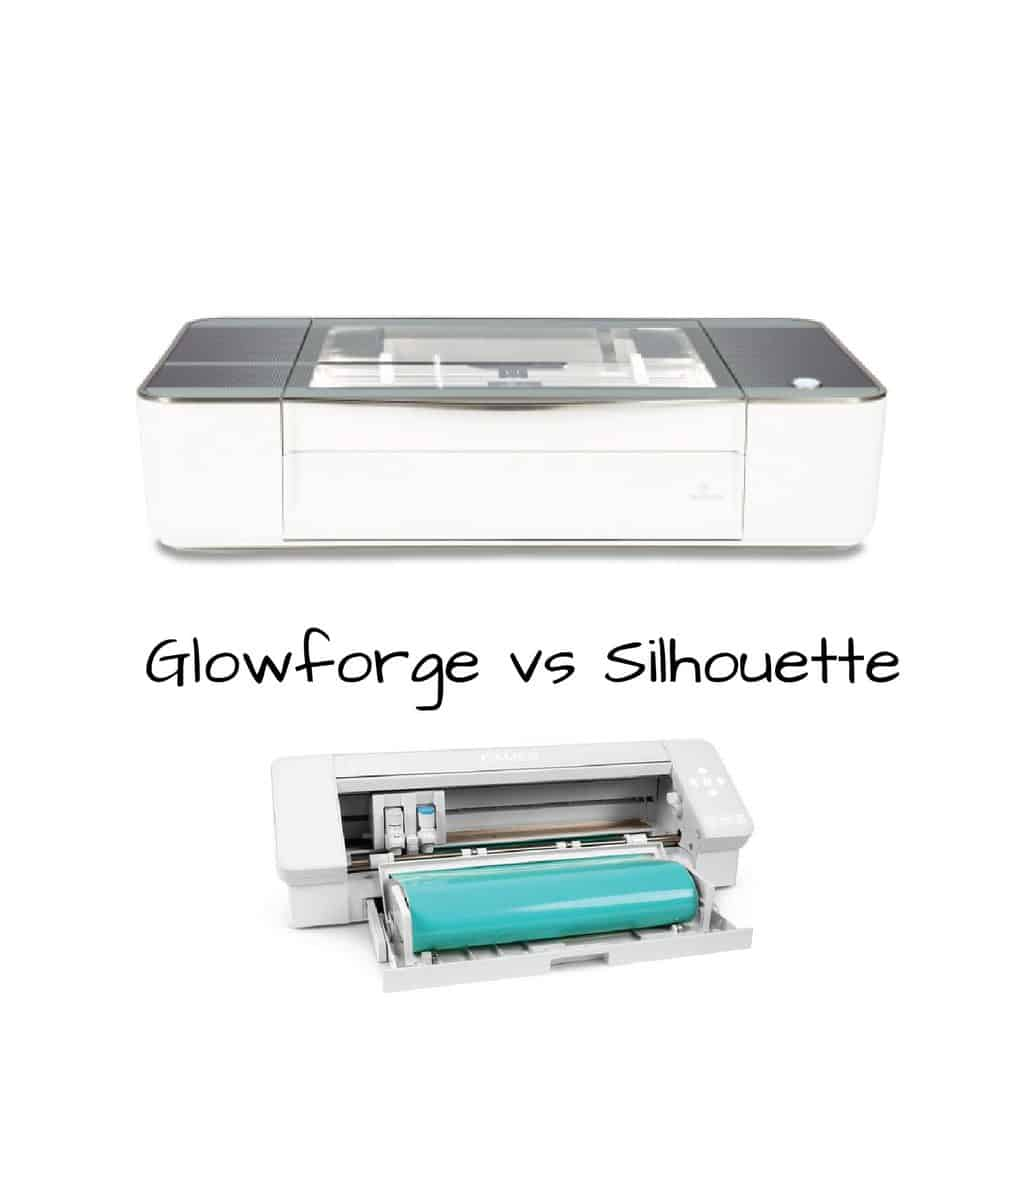 Silhouette vs Glowforge {They're not as similar as you think}